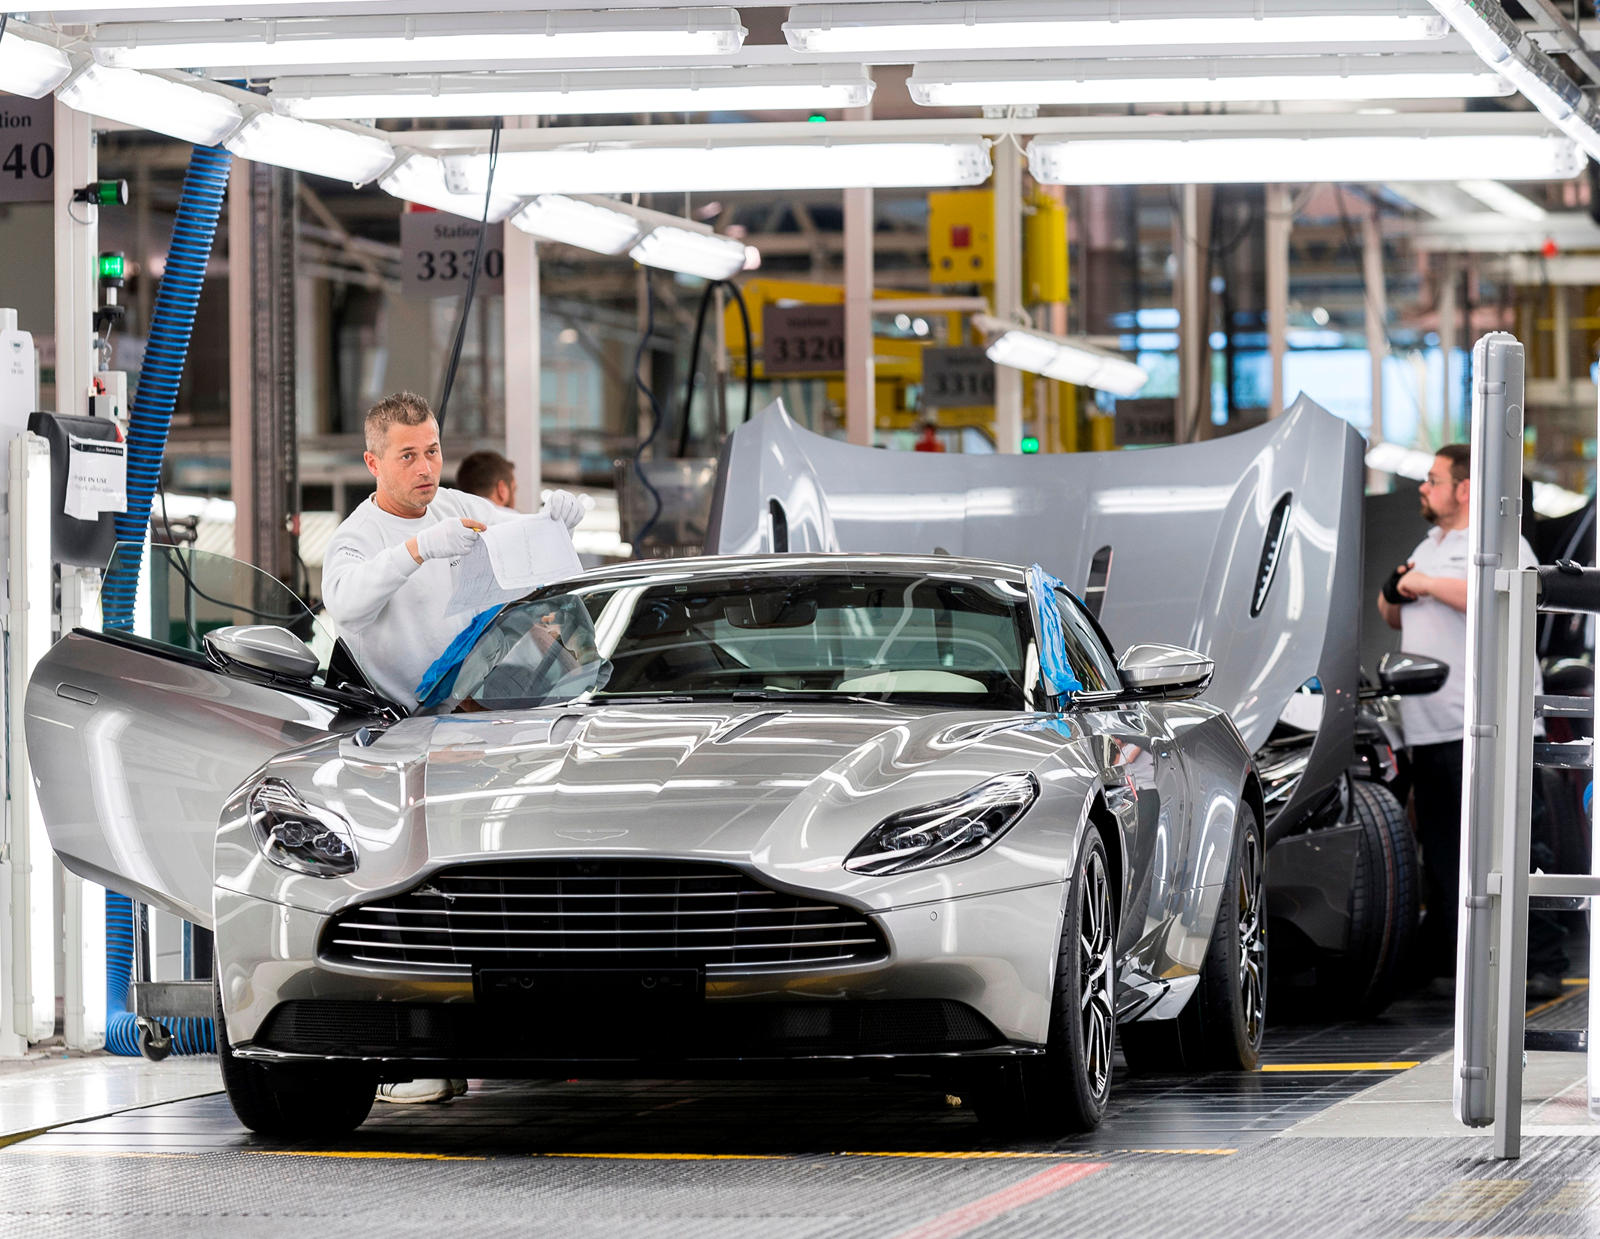 aston martin making early plans for brexit - carbuzz